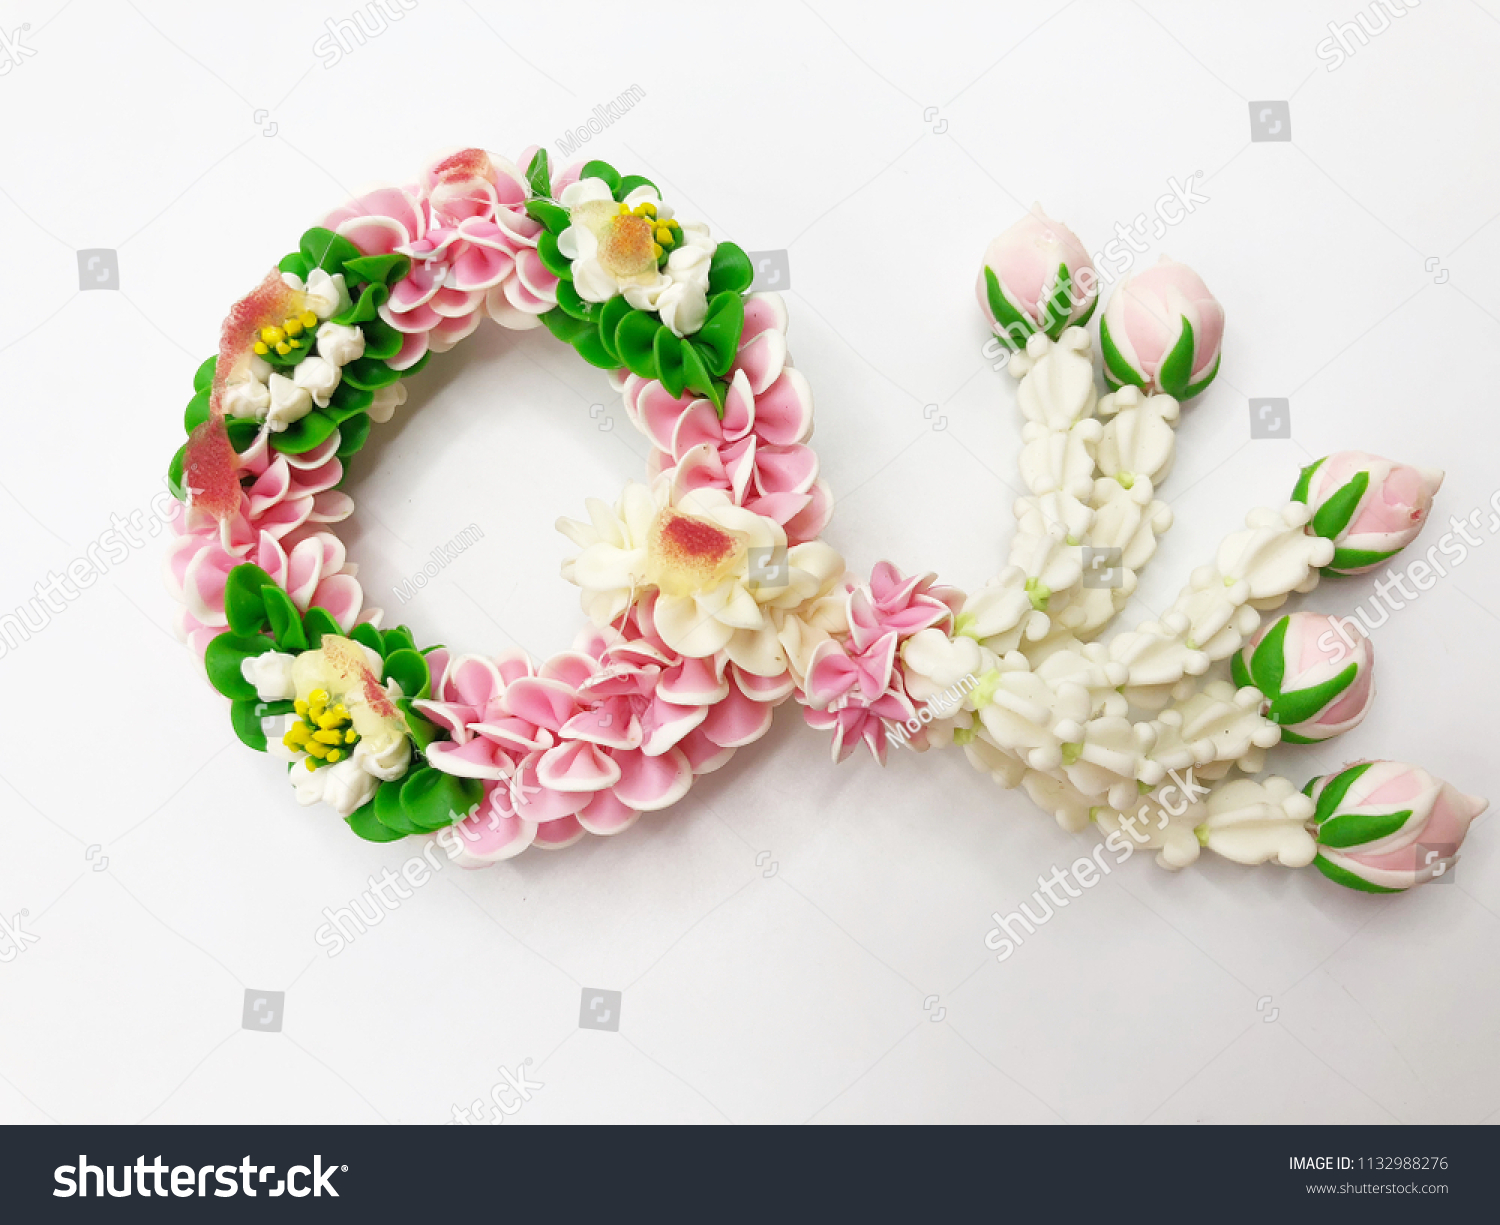 Artificial thai garland colorful flower on stock photo edit now artificial thai garland colorful flower on white background izmirmasajfo